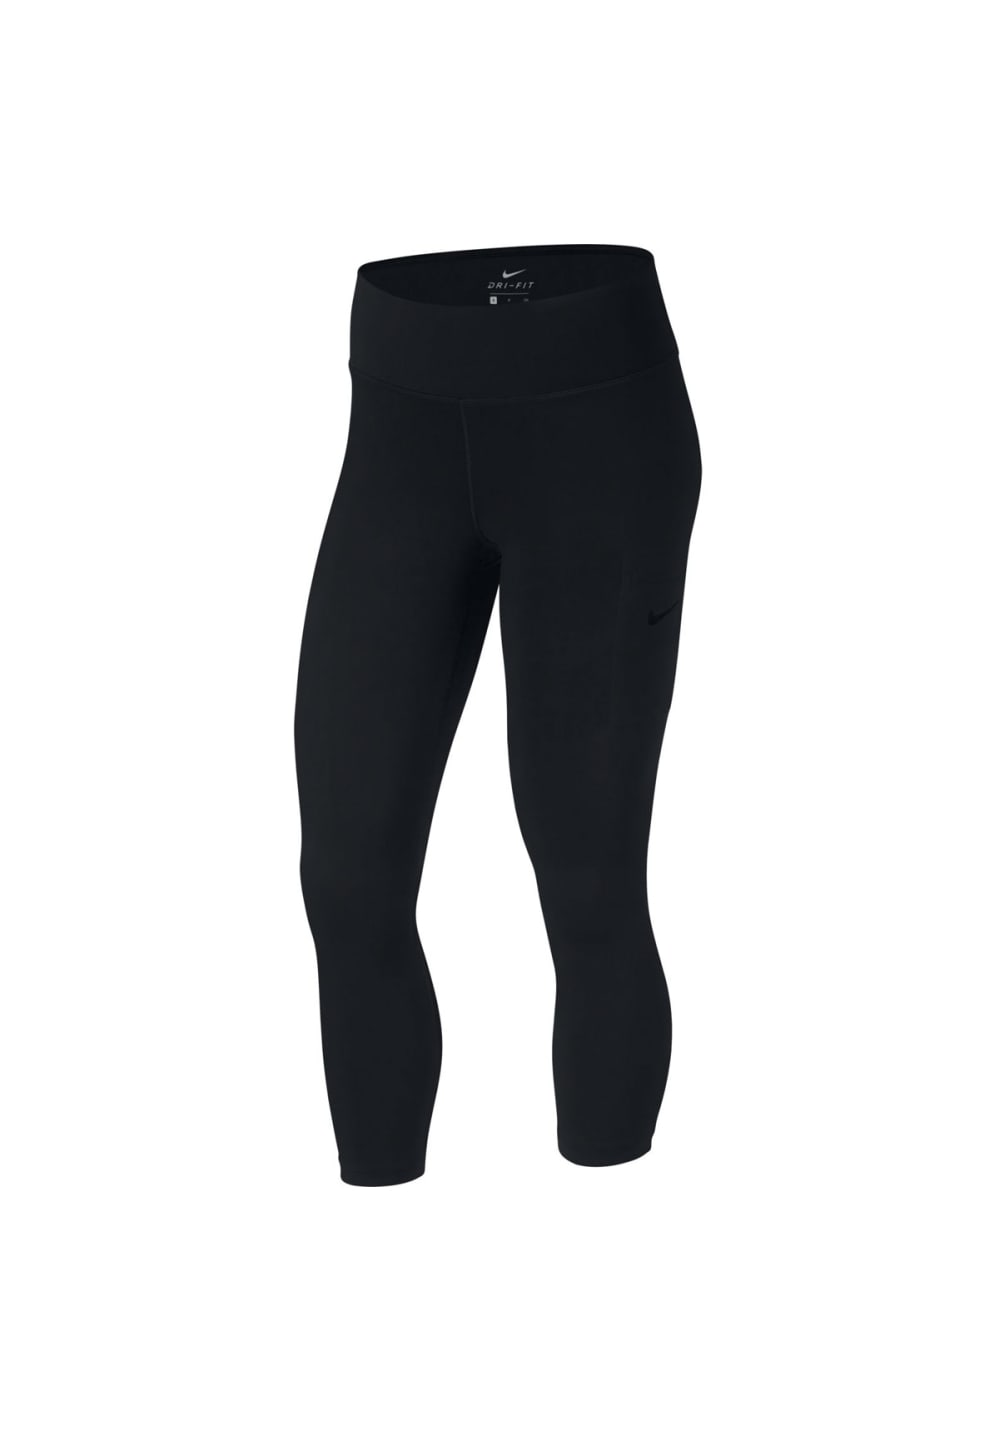 Nike Power Training Crop - Fitnesshosen für Damen - Schwarz